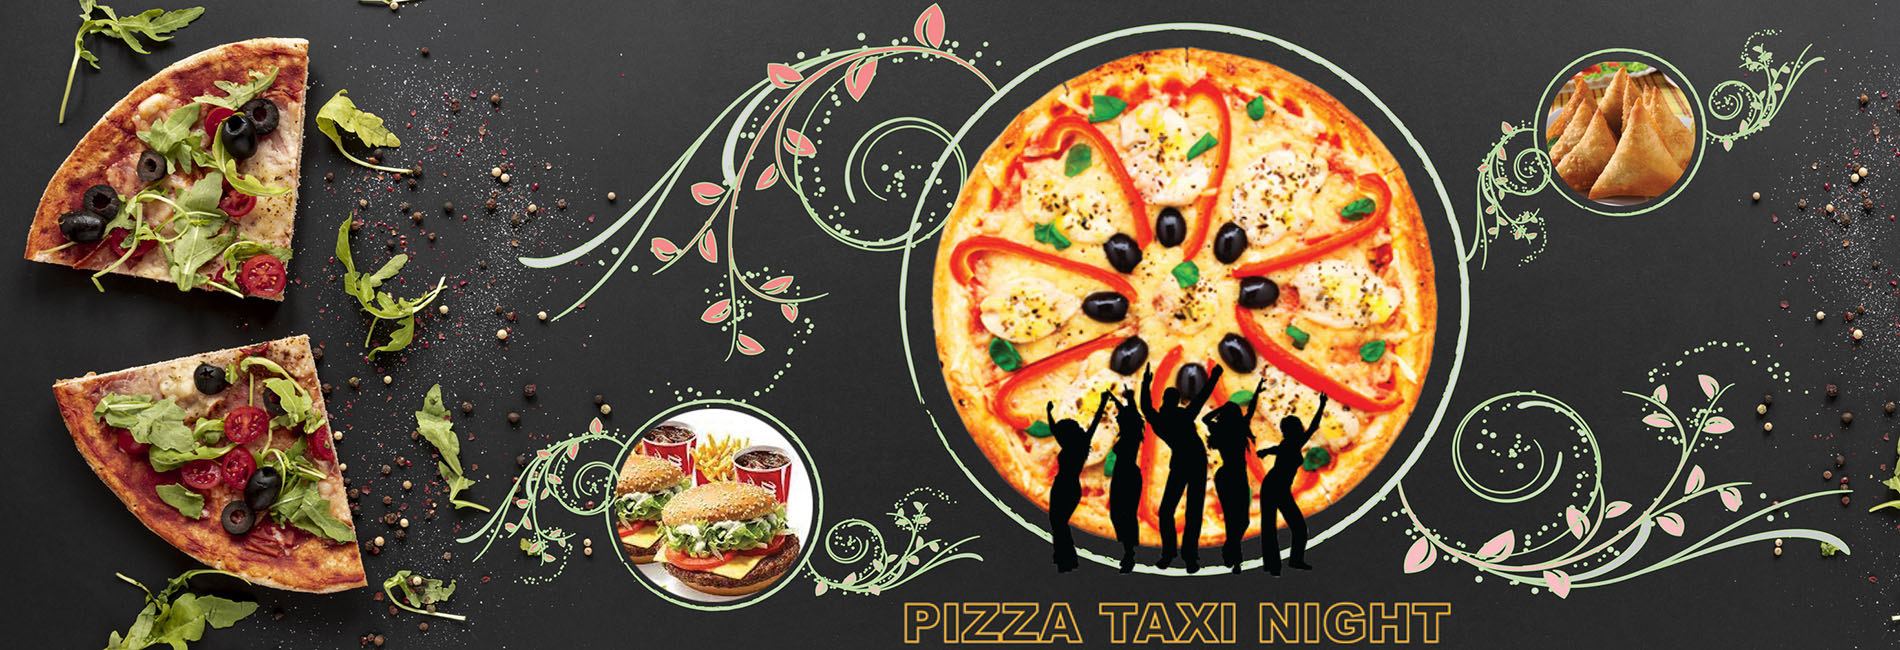 Pizza Taxi Night